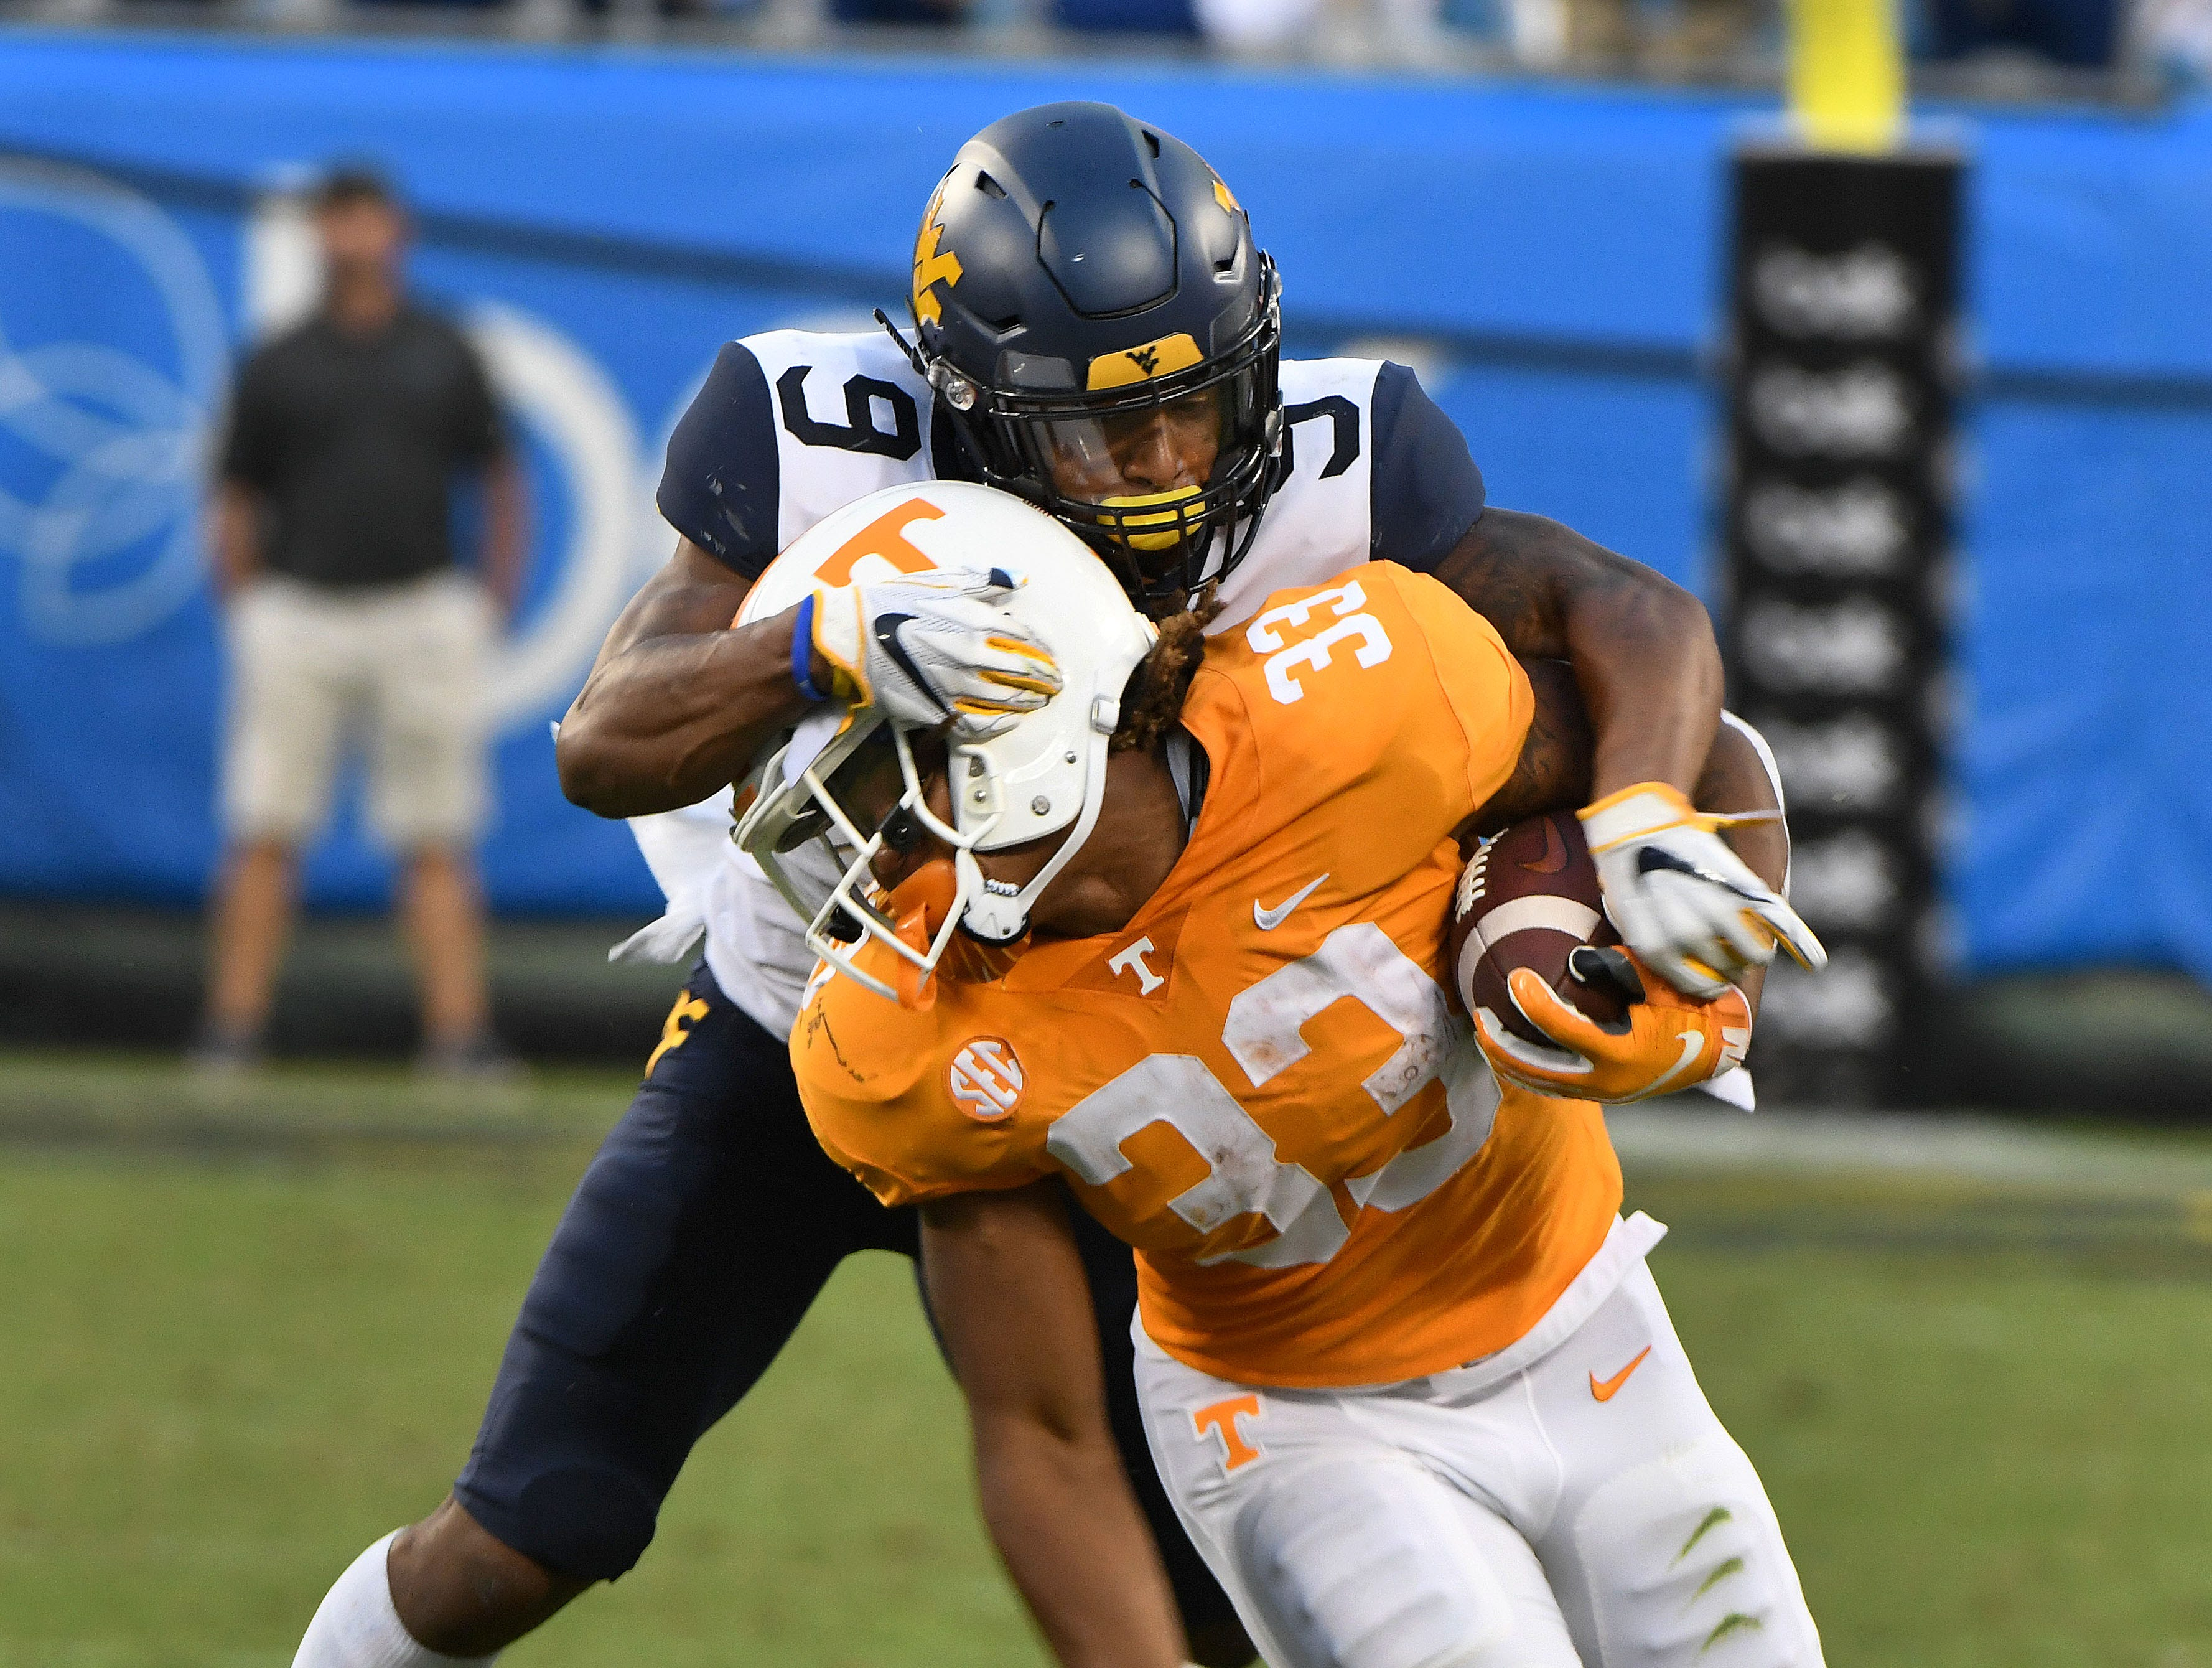 Tennessee running back Jeremy Banks (33) is tackled by West Virginia JoVanni Stewart (9) during the final minutes of their 40-14 loss to West Virginia in the Belk College Kickoff game in Charlotte, NC Saturday, September 1, 2018.